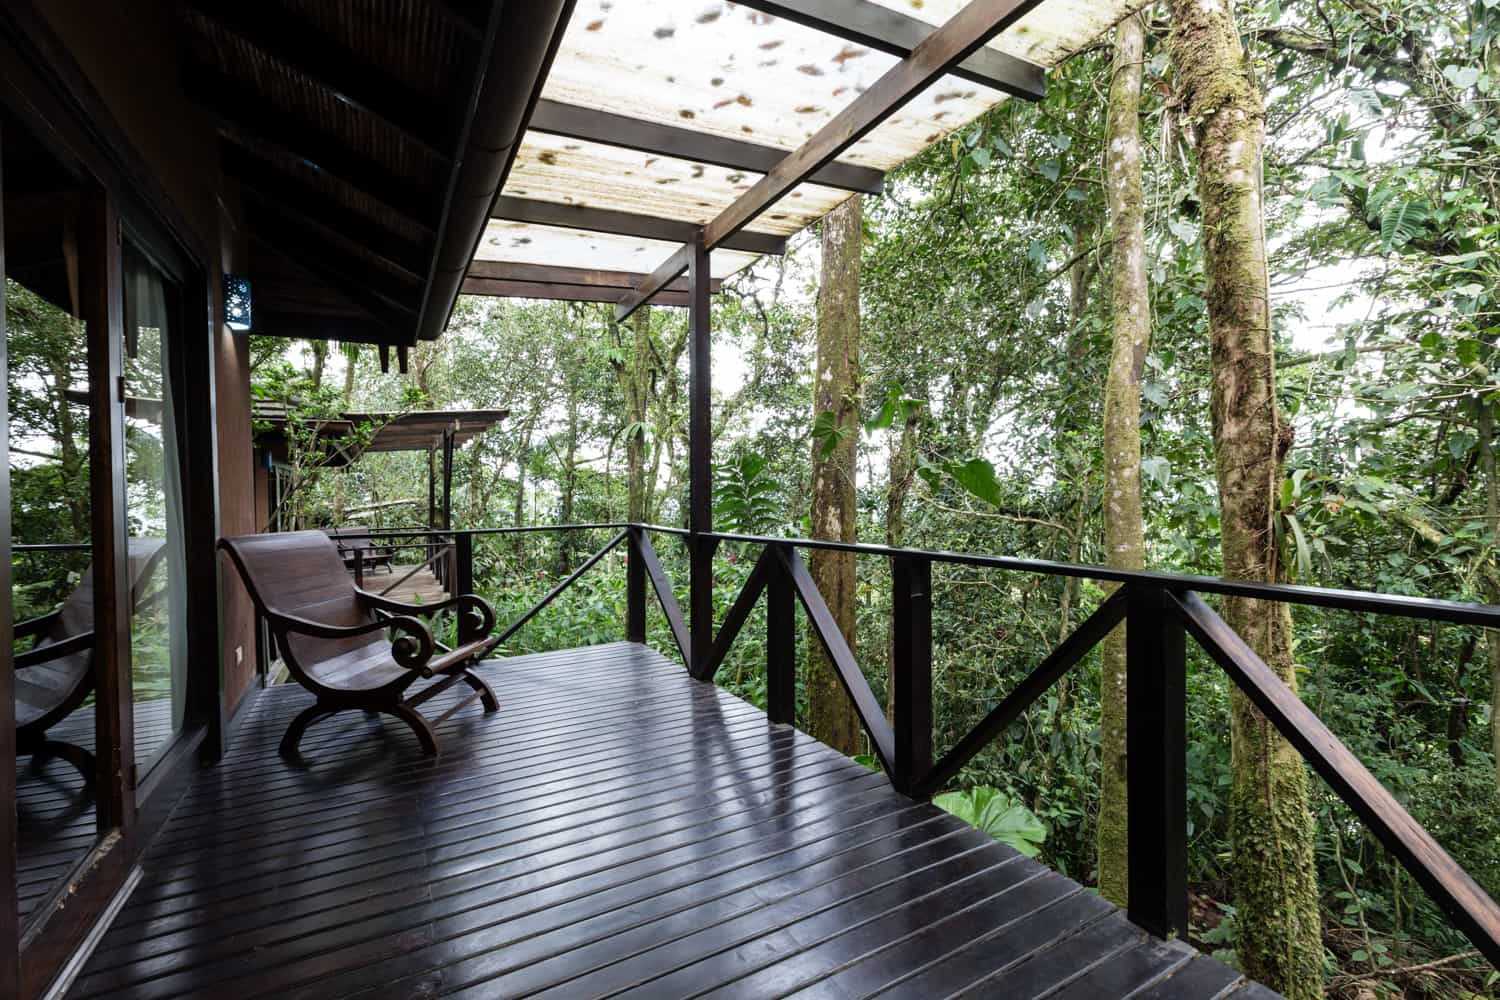 Rainforest surrounds covered wood deck at room for wedding guests.